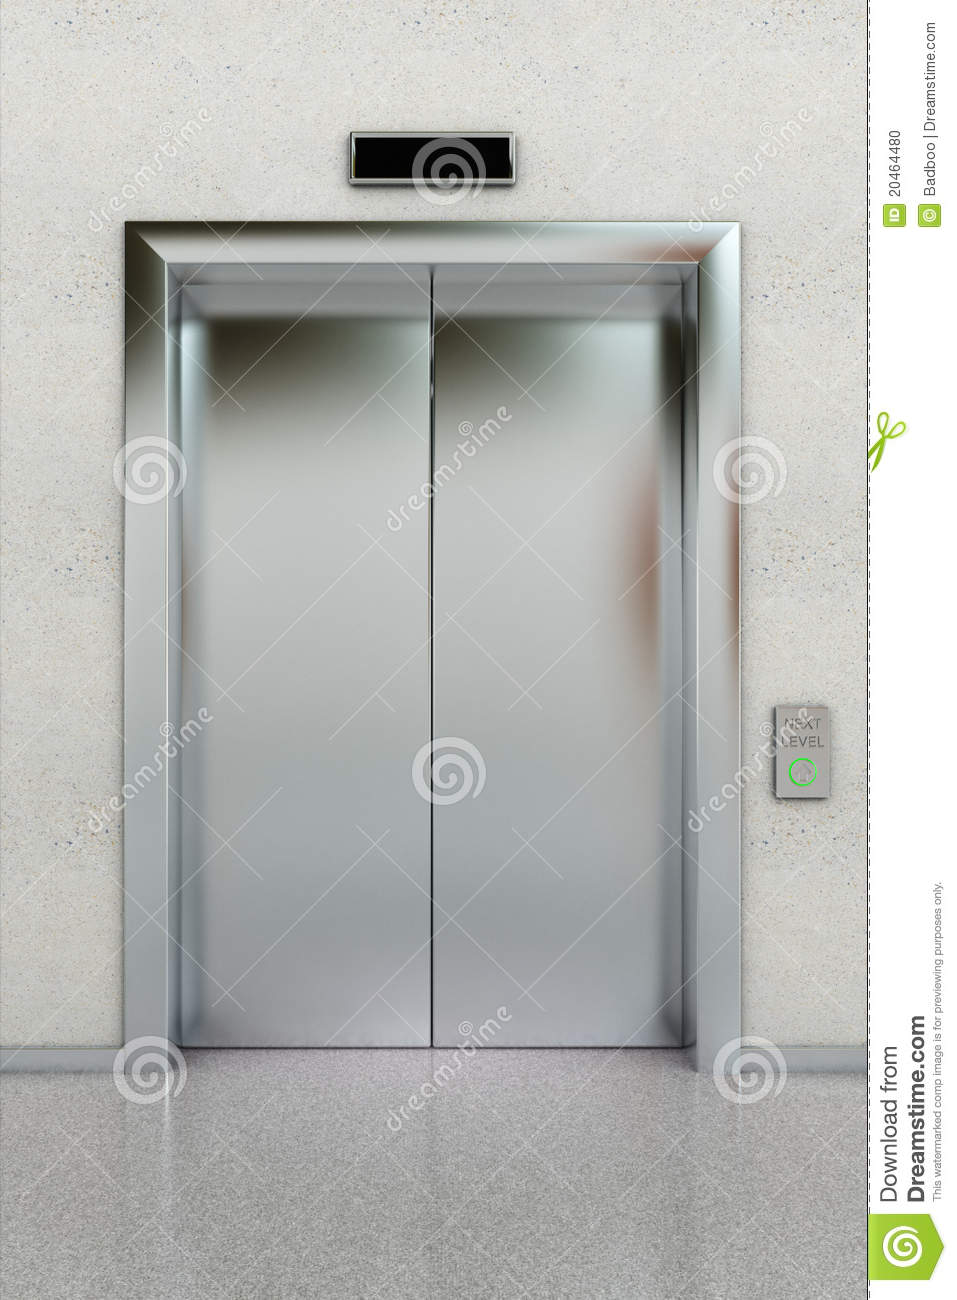 Closed Elevator Stock Photo Image 20464480